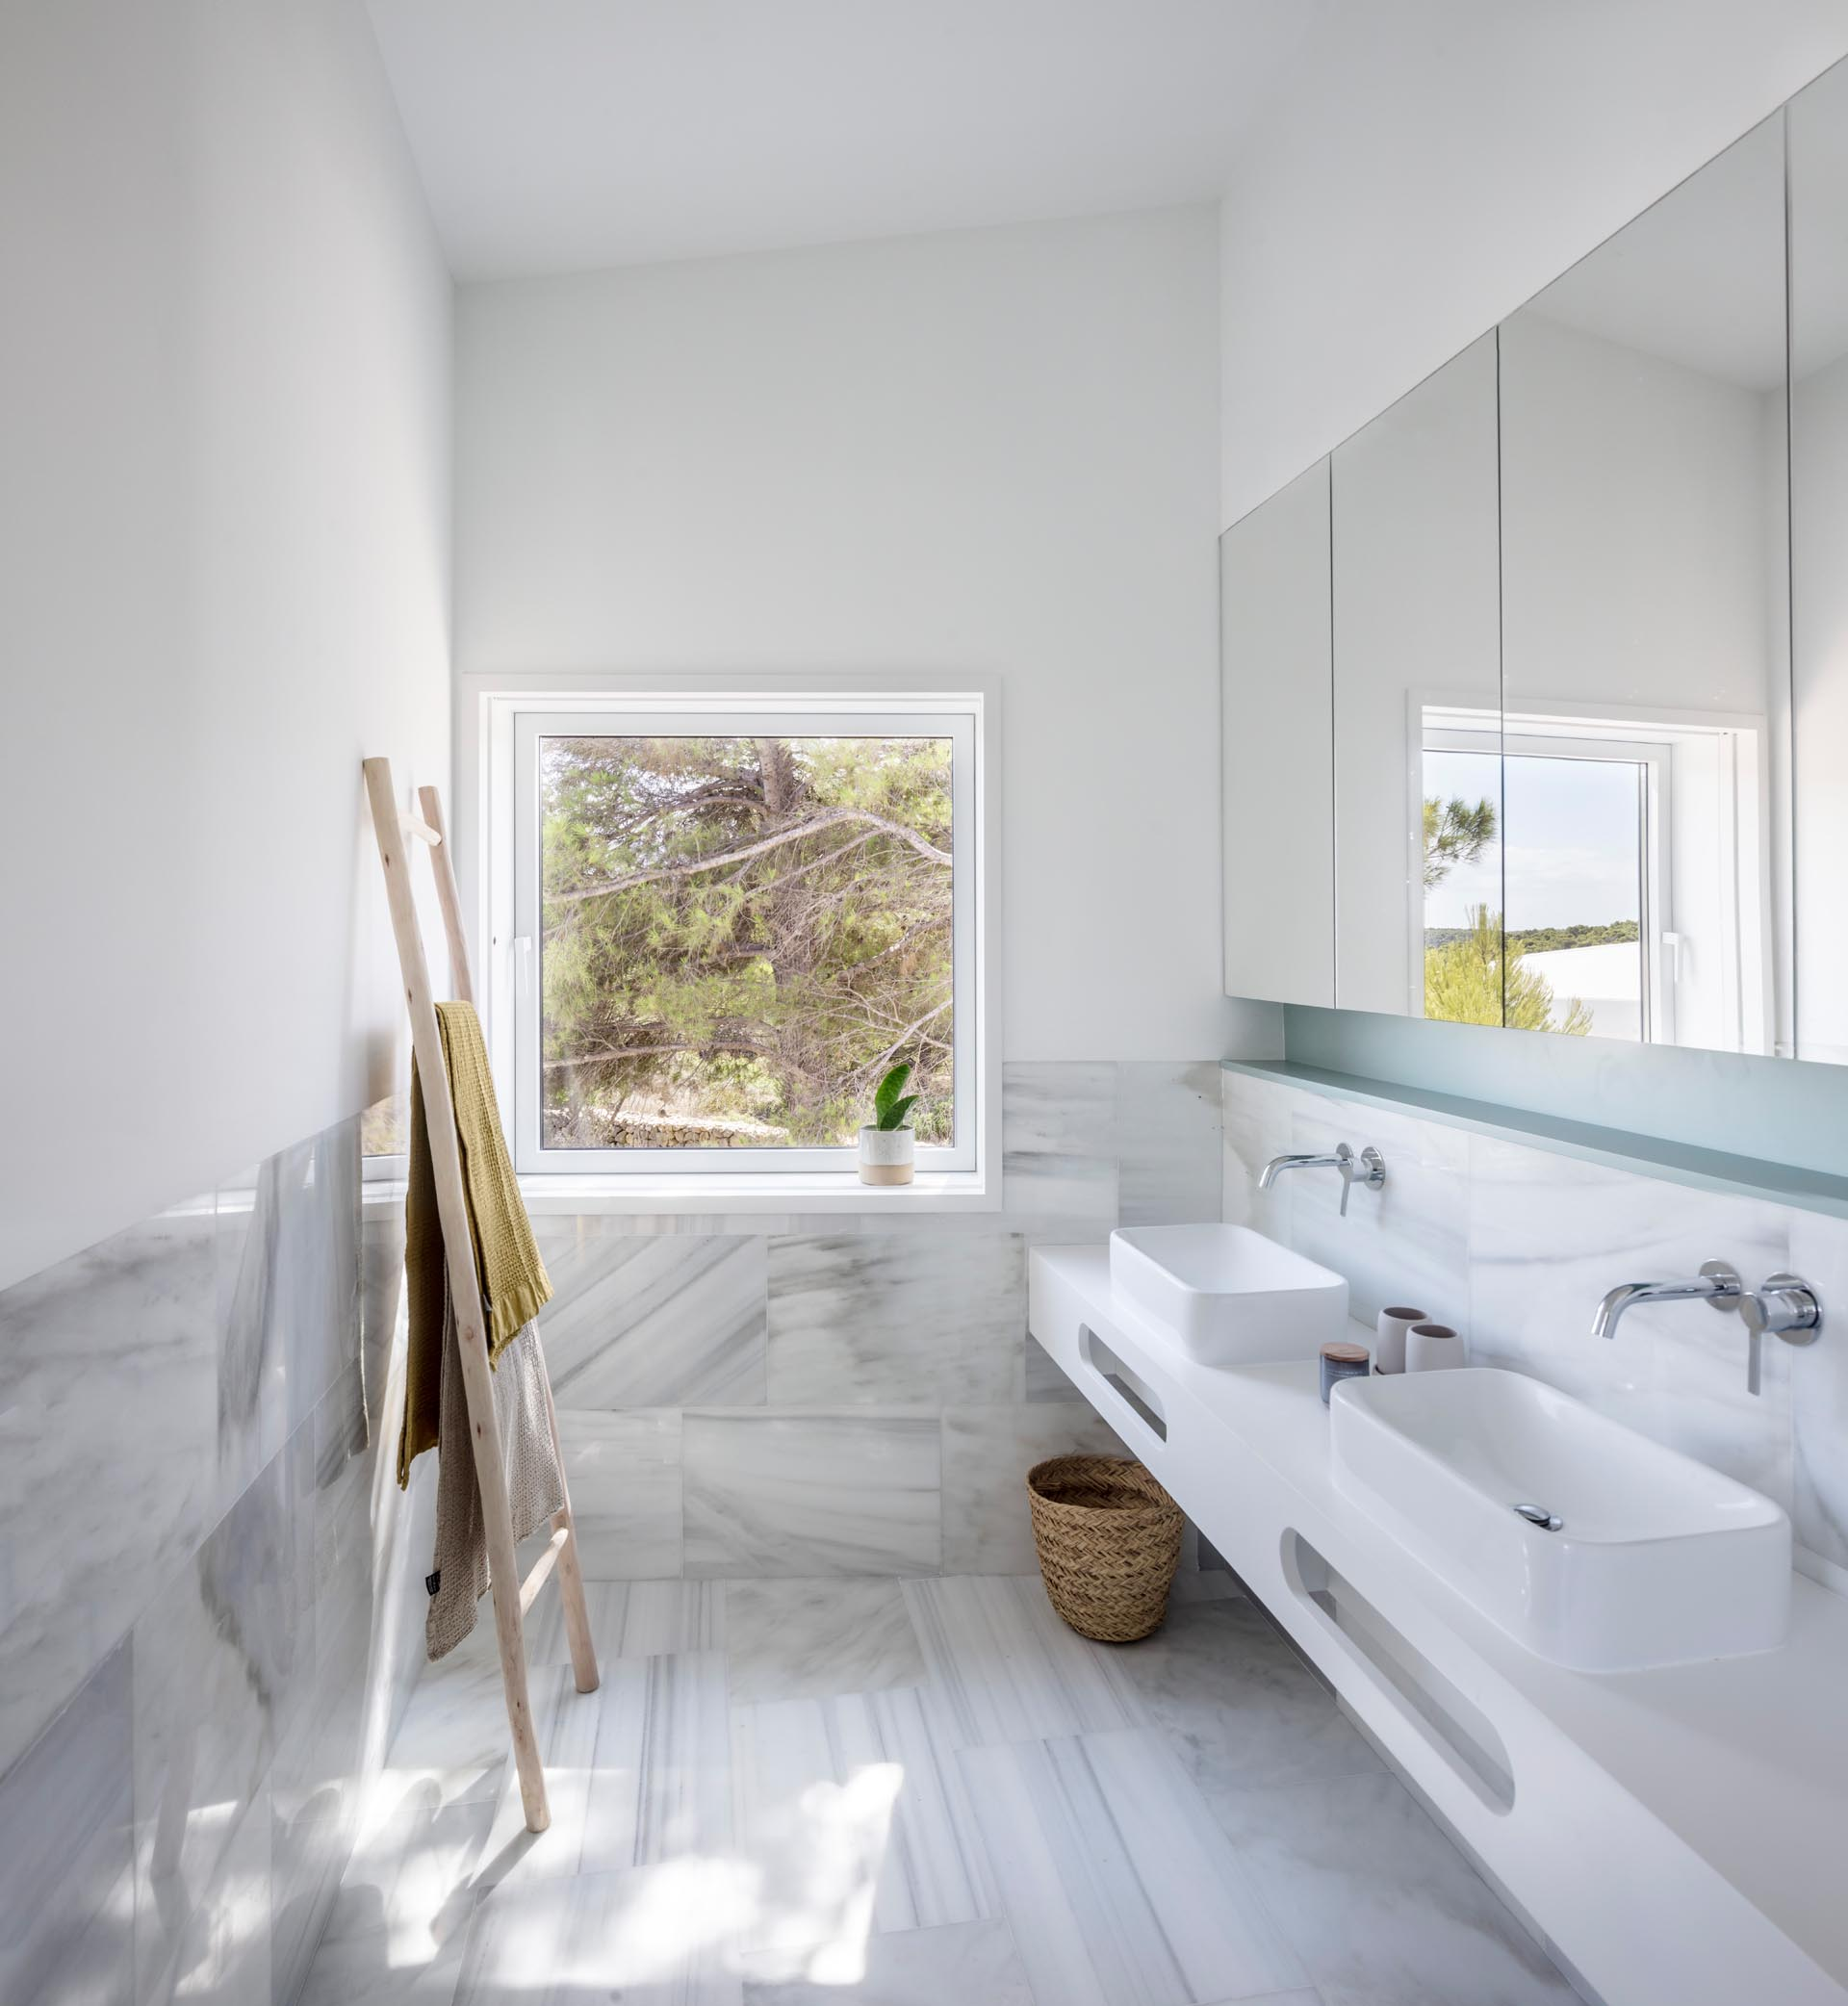 A modern bathroom with large format marble tile, a white vanity, and a pastel turquoise shelving niche.